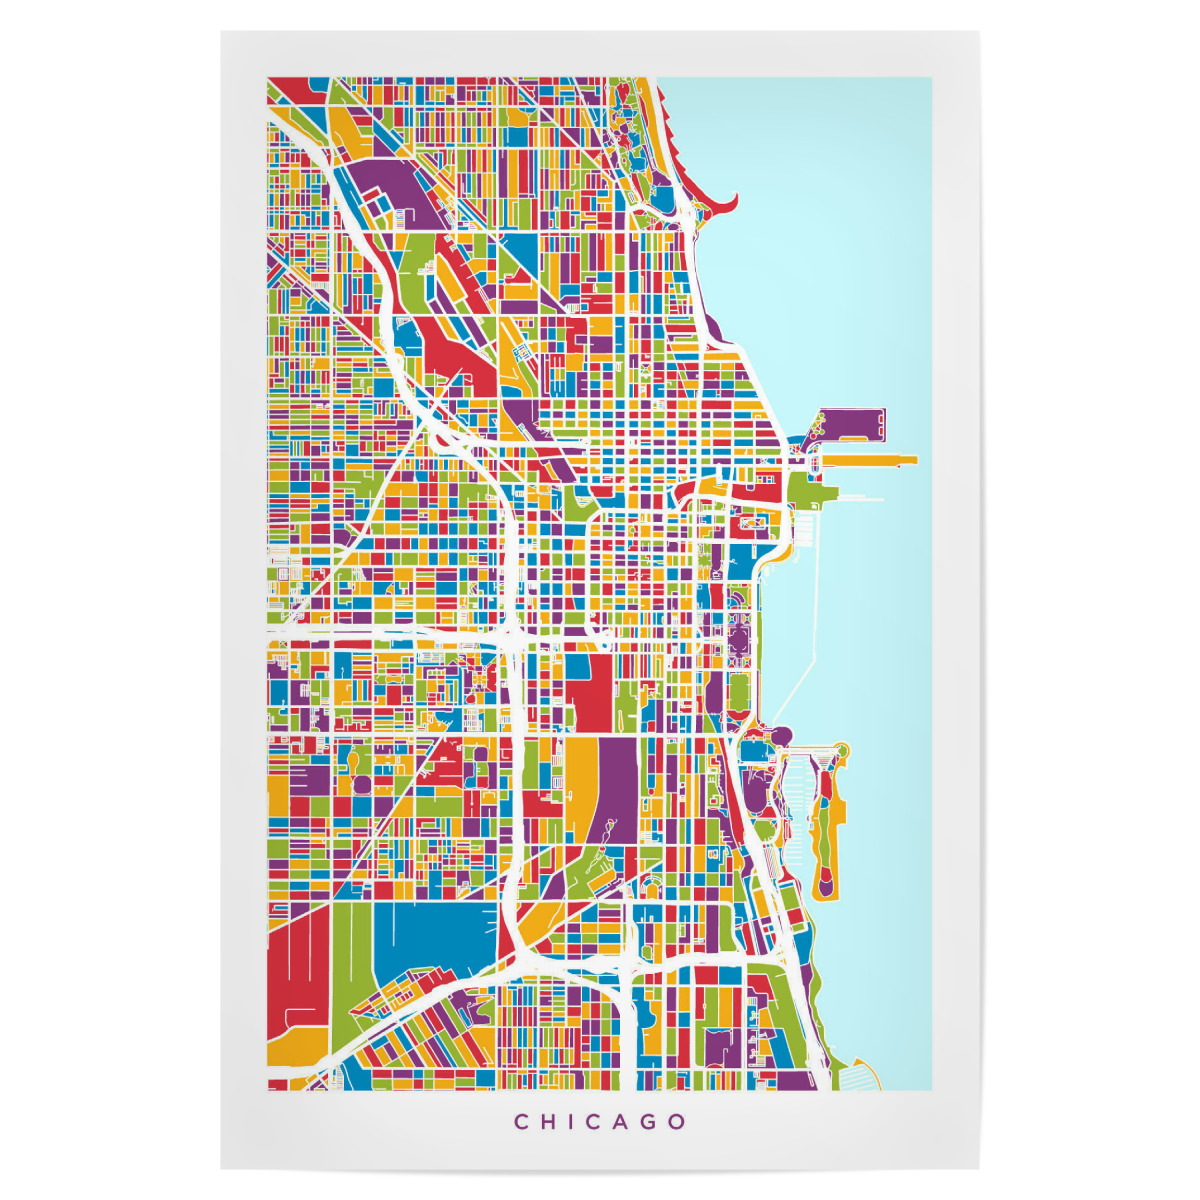 Purchase the Chicago City Street Map as a Poster at artboxONE on